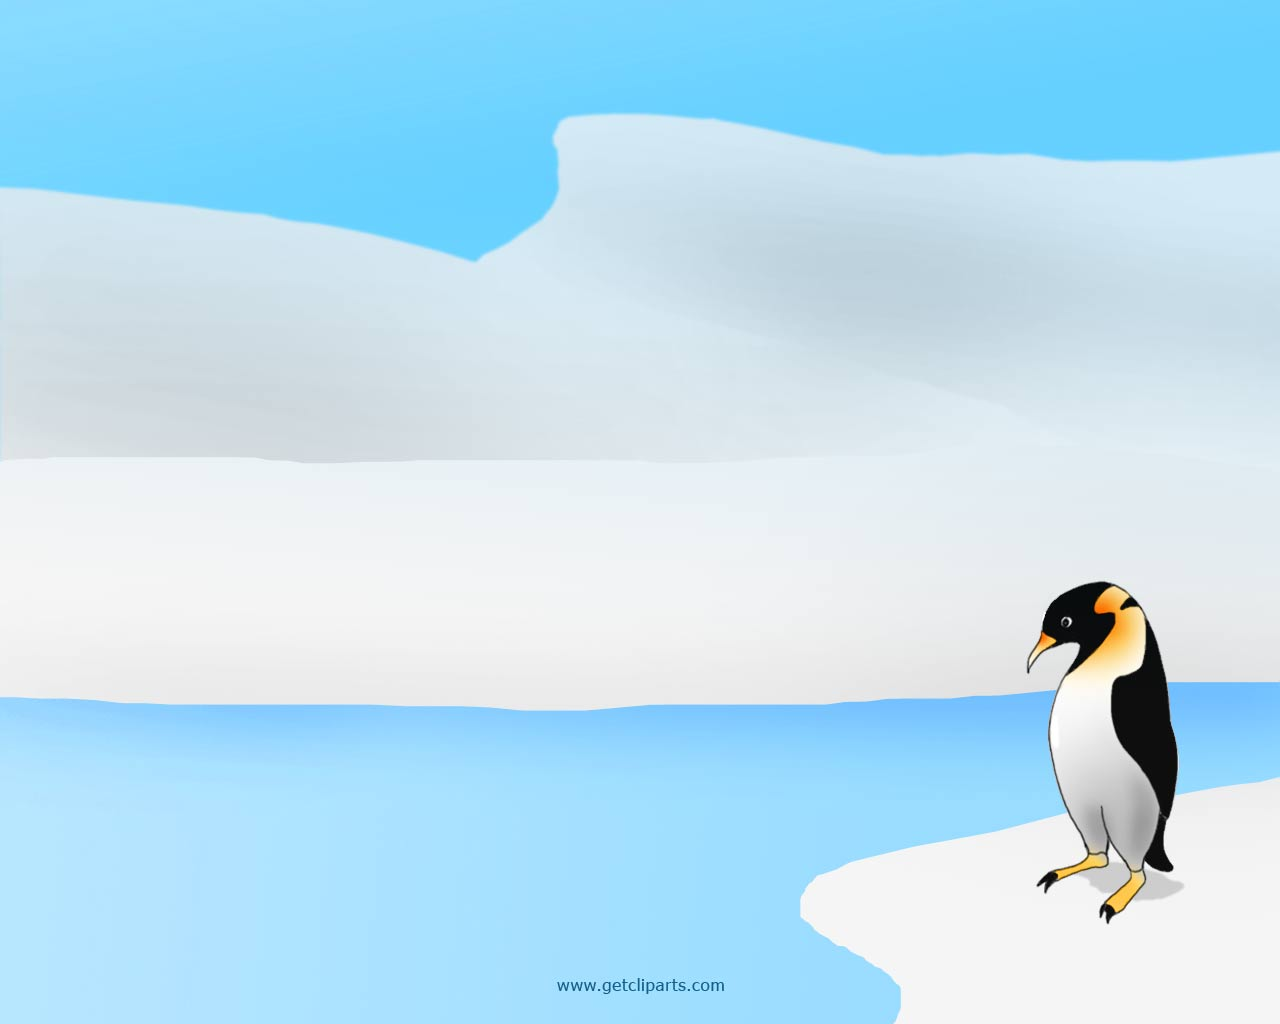 Antarctica clipart background Backgrounds best Pinterest PPT on